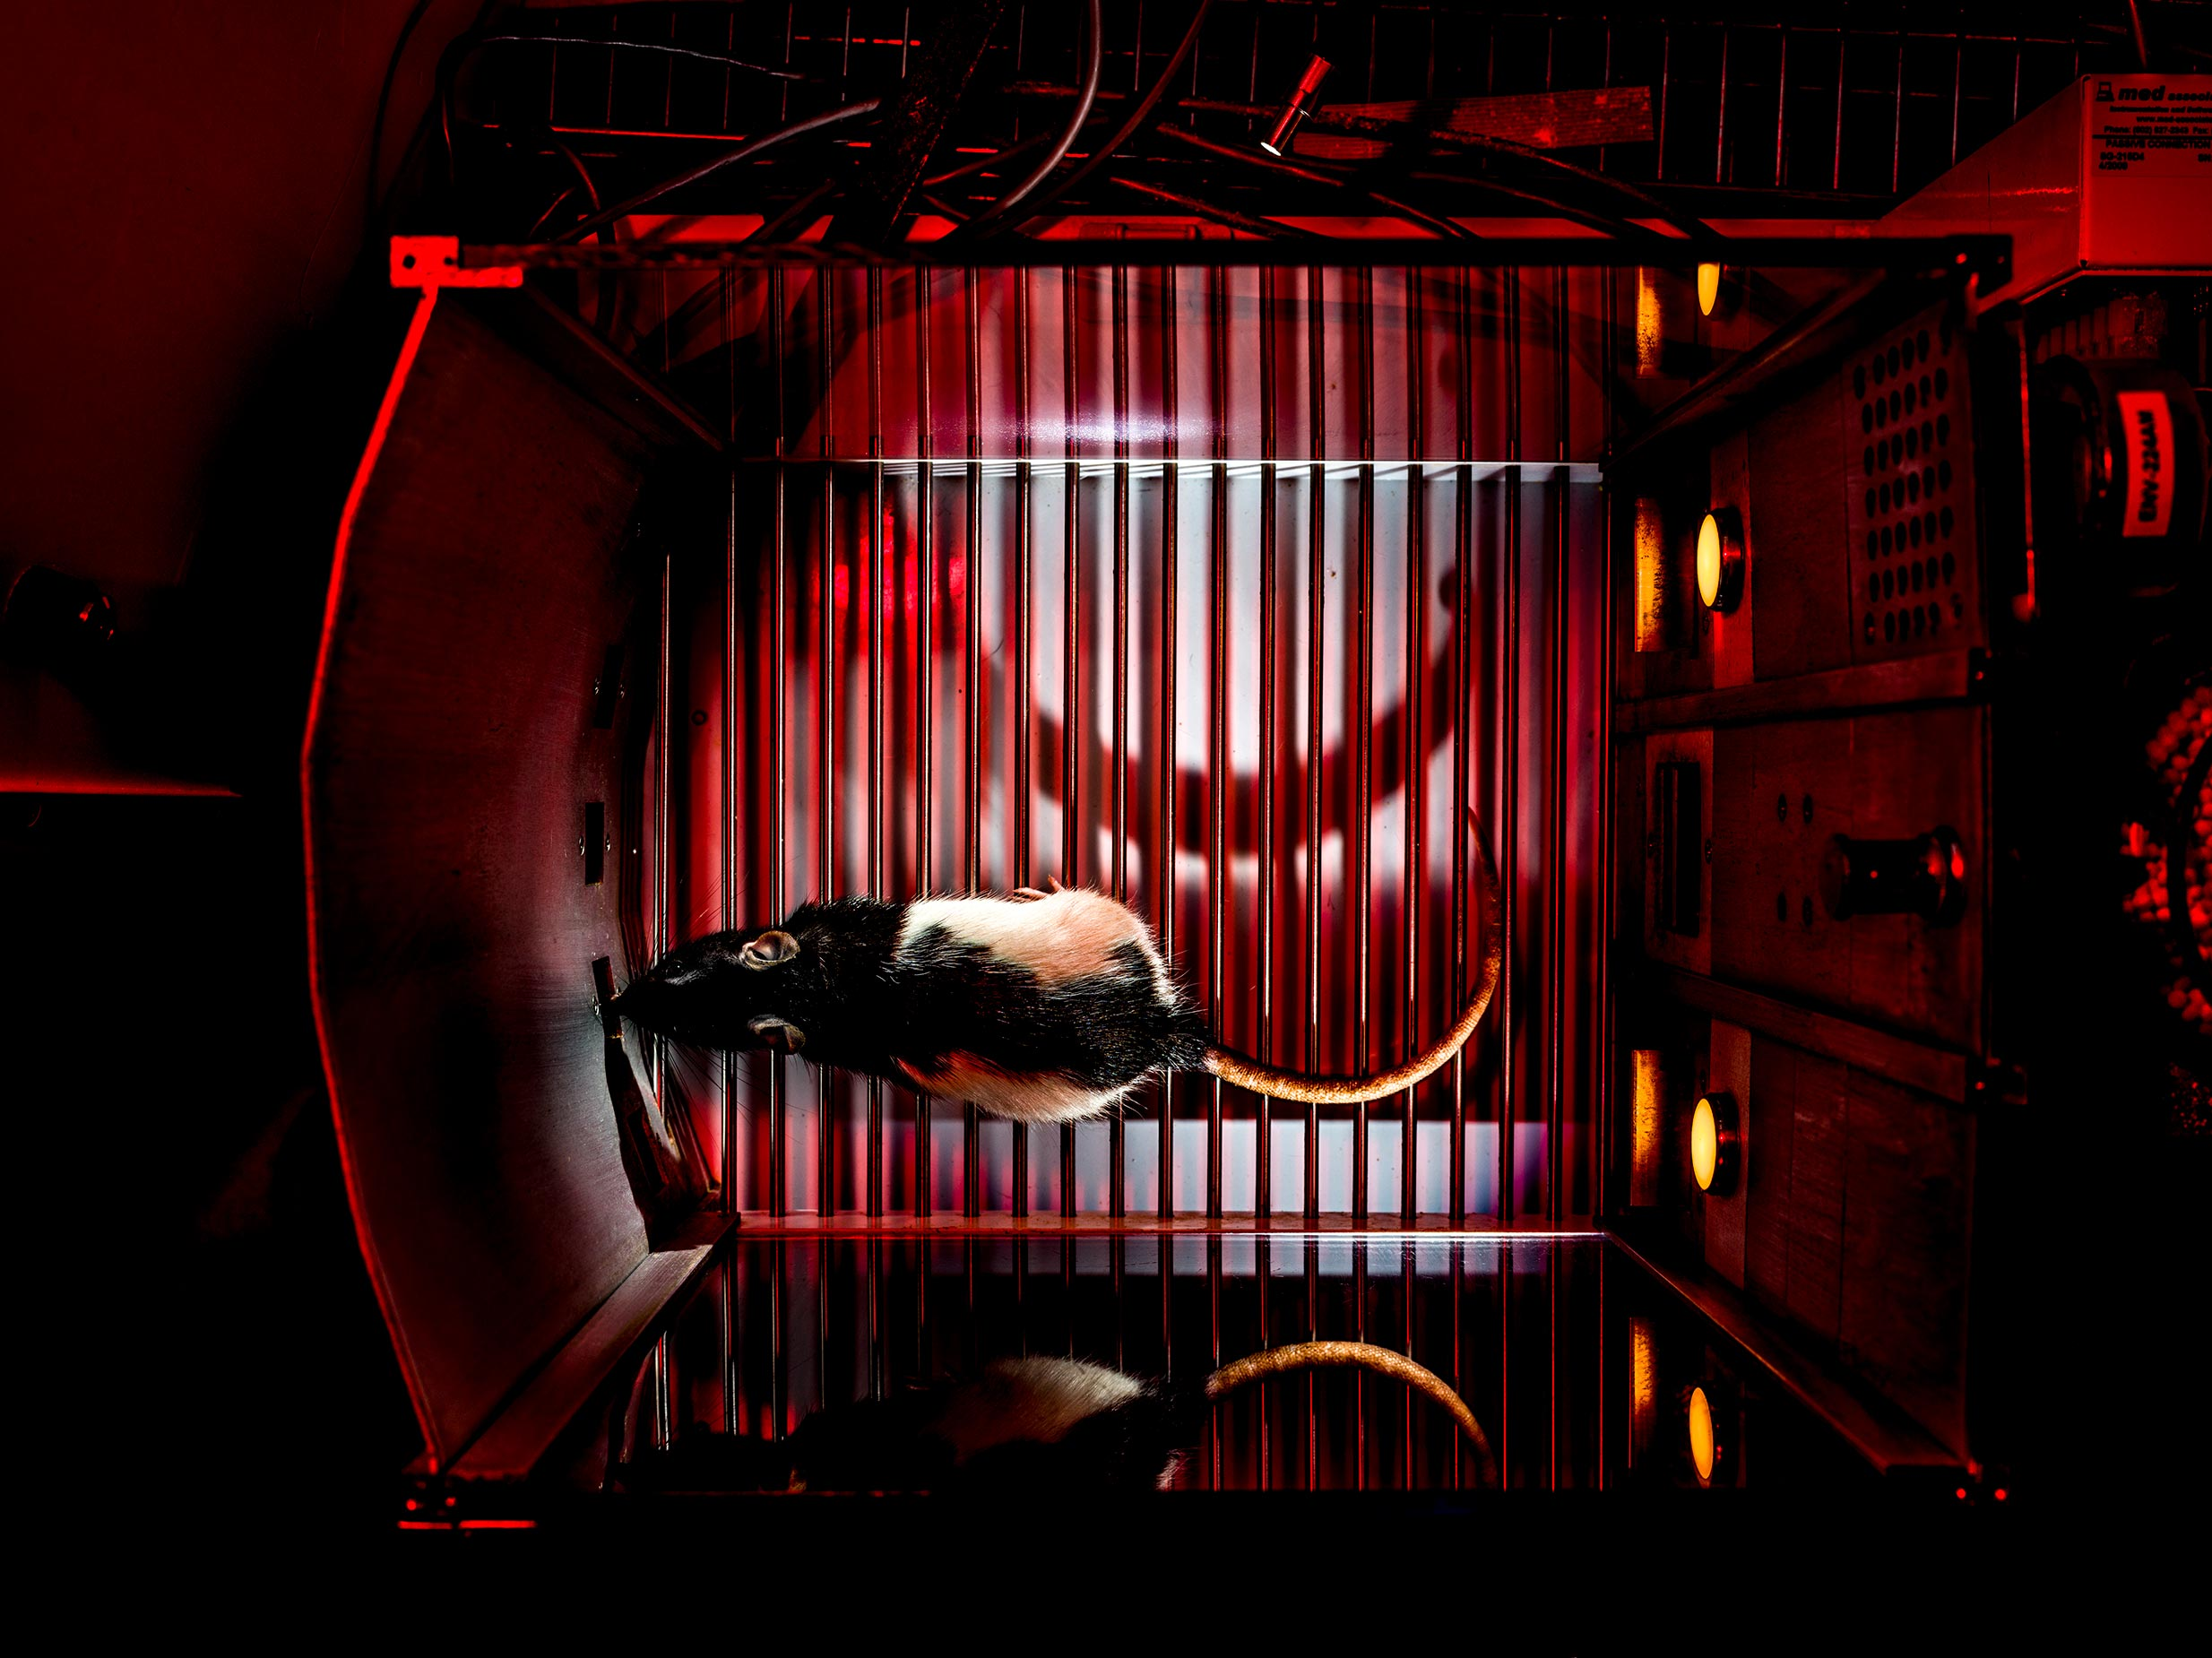 Rat Casino, rewards and triggers, flashing lights and sounds to mimic a human casino built by this lab to study behavior and find targets in the brain that may one day treat humans with the disease. Catharine Winstanley Lab, University of British Columbia, Vancouver